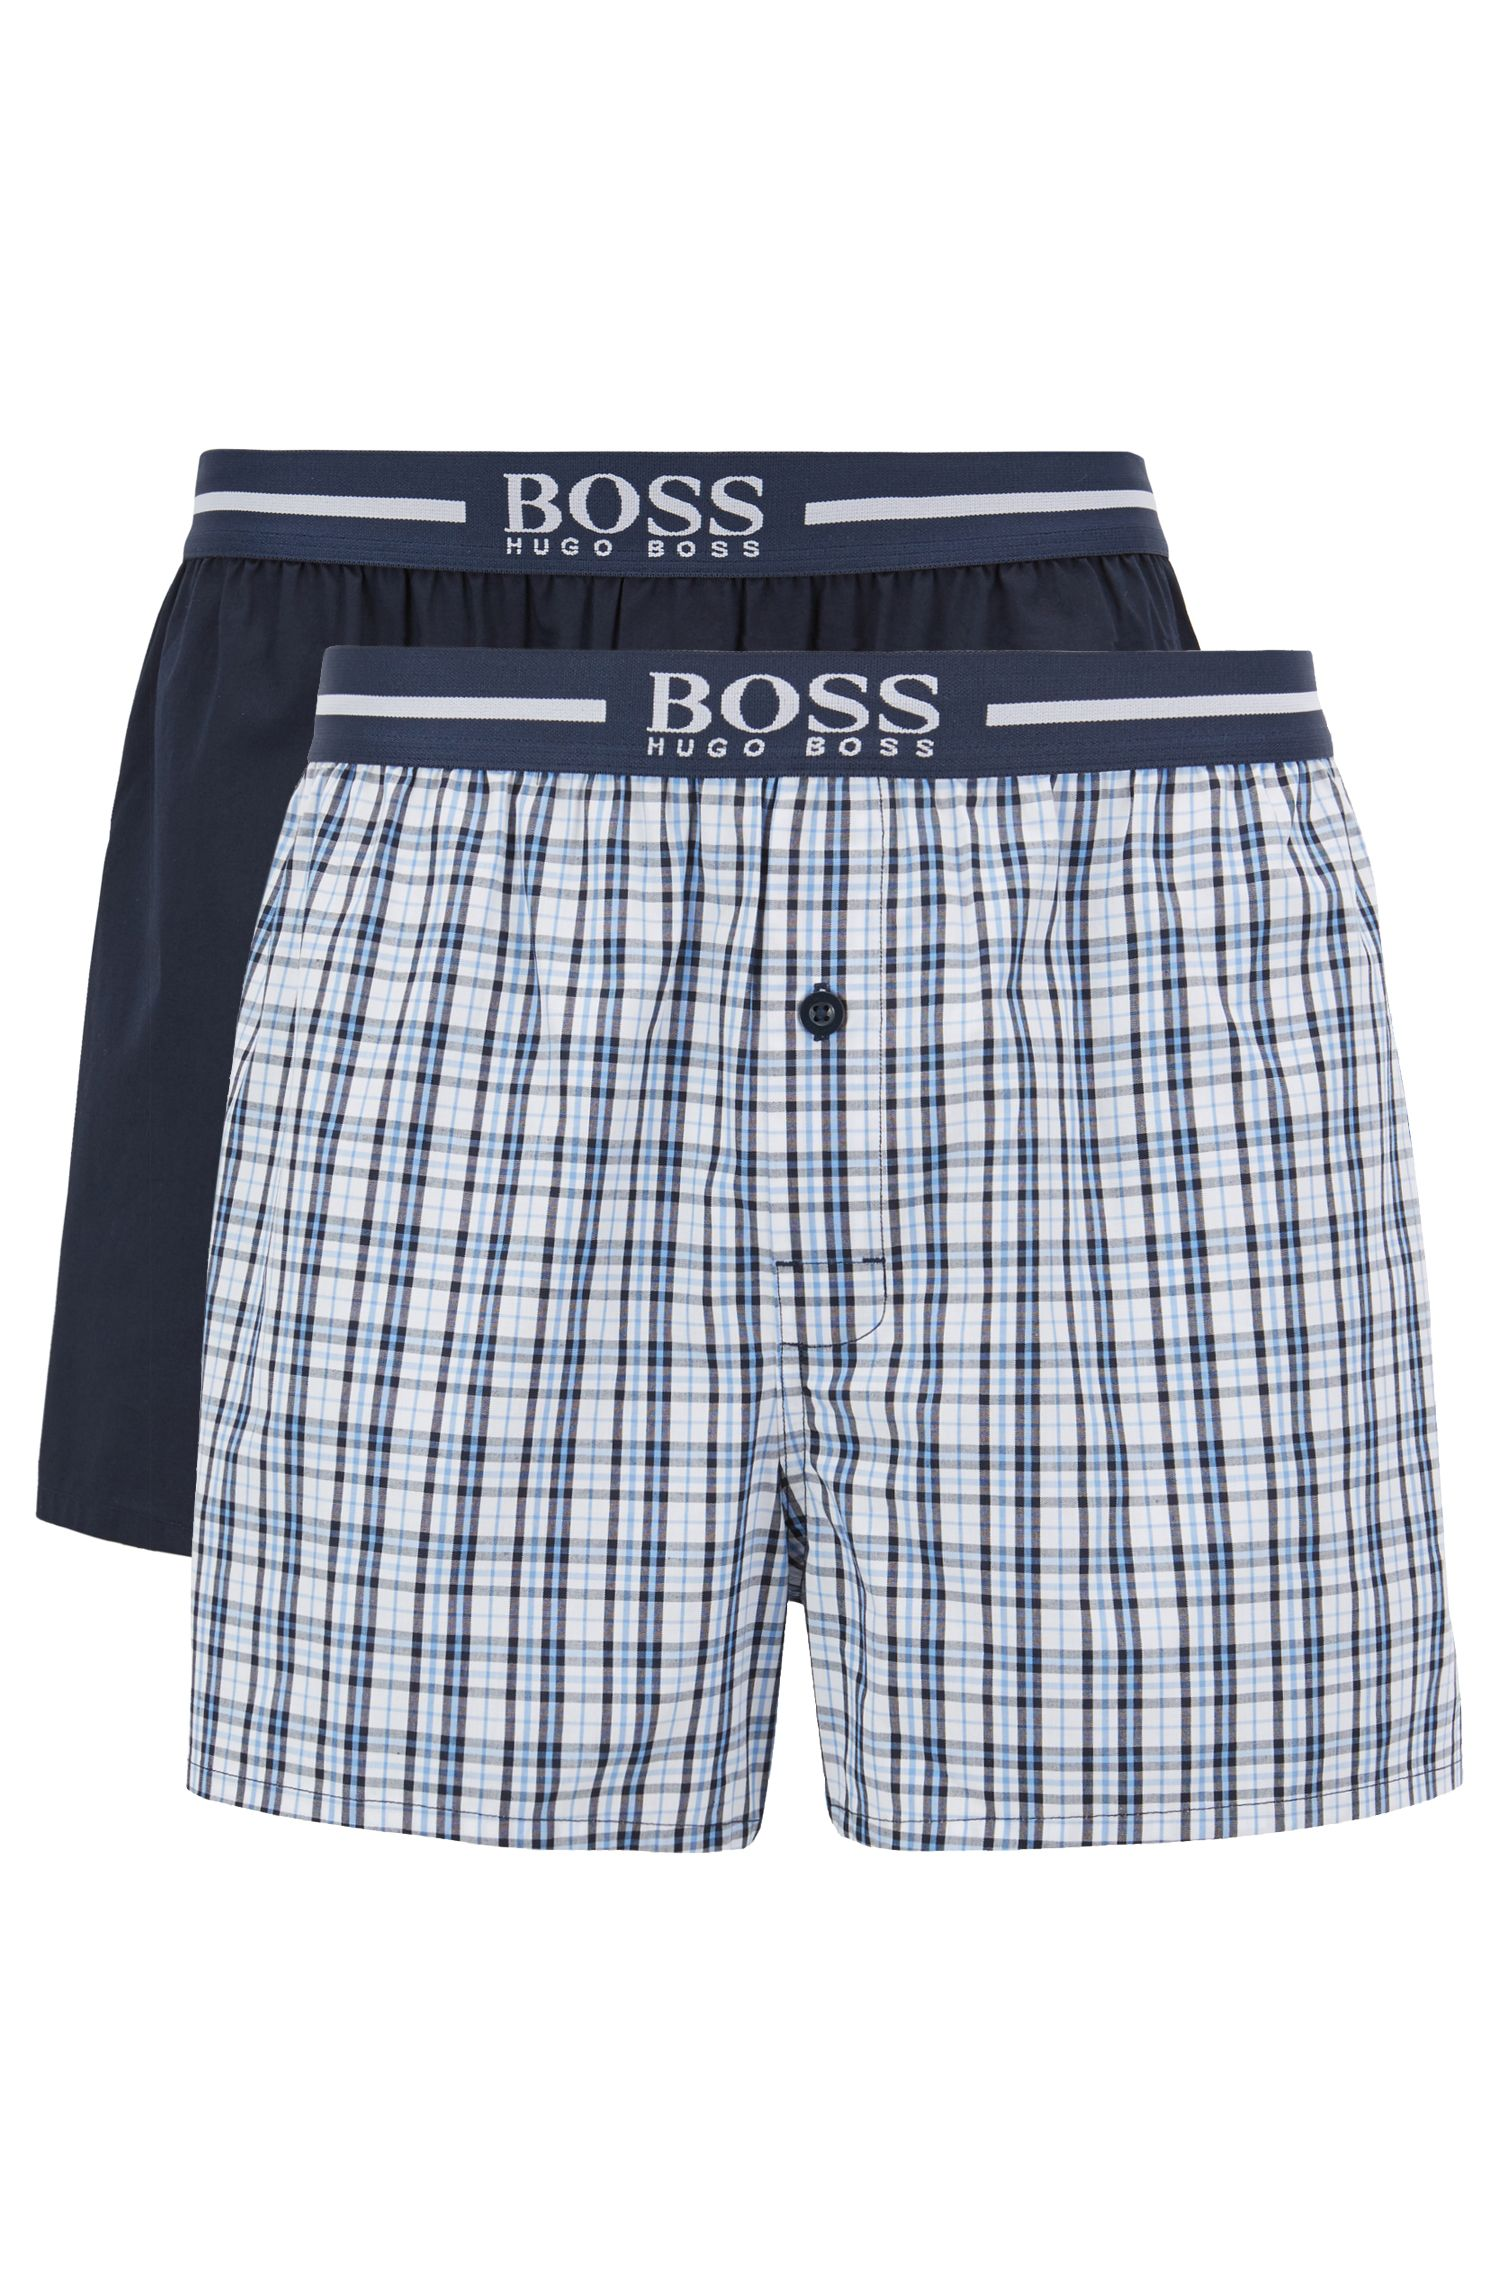 Double pack of boxer shorts in cotton poplin BOSS